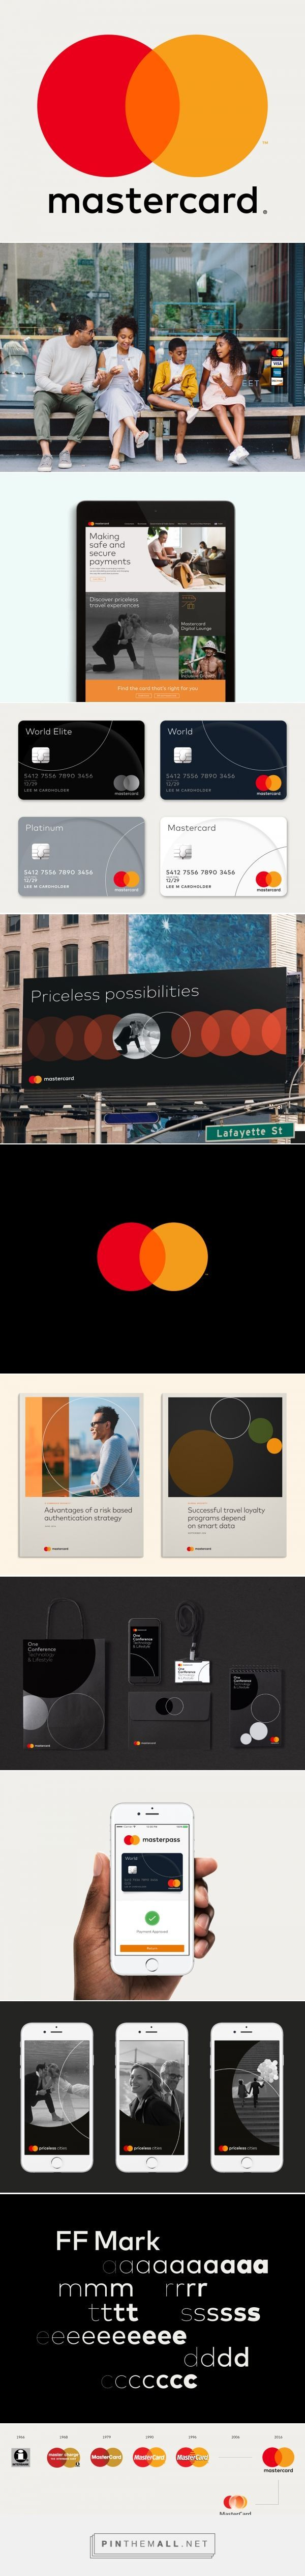 100 best Brand Identity images on Pinterest